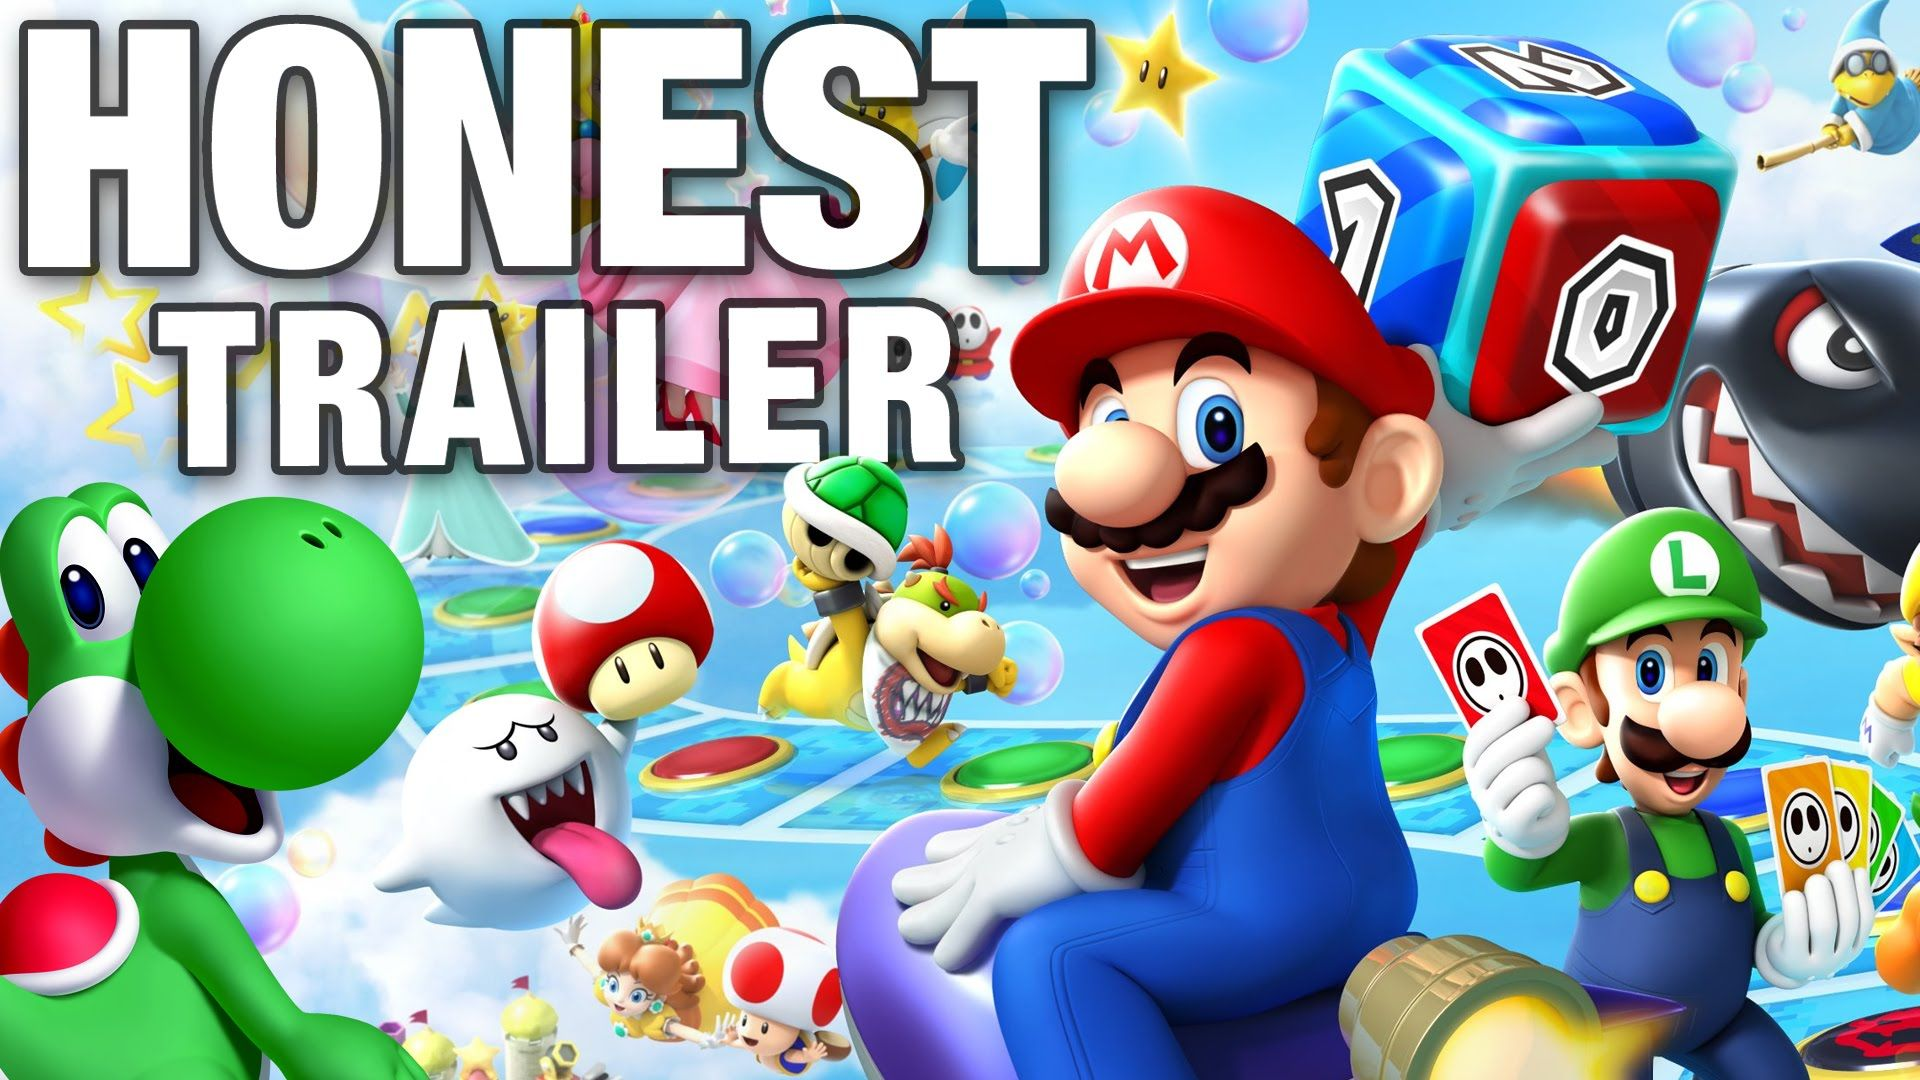 Mario party 10 honest game trailers nintendo 3ds games